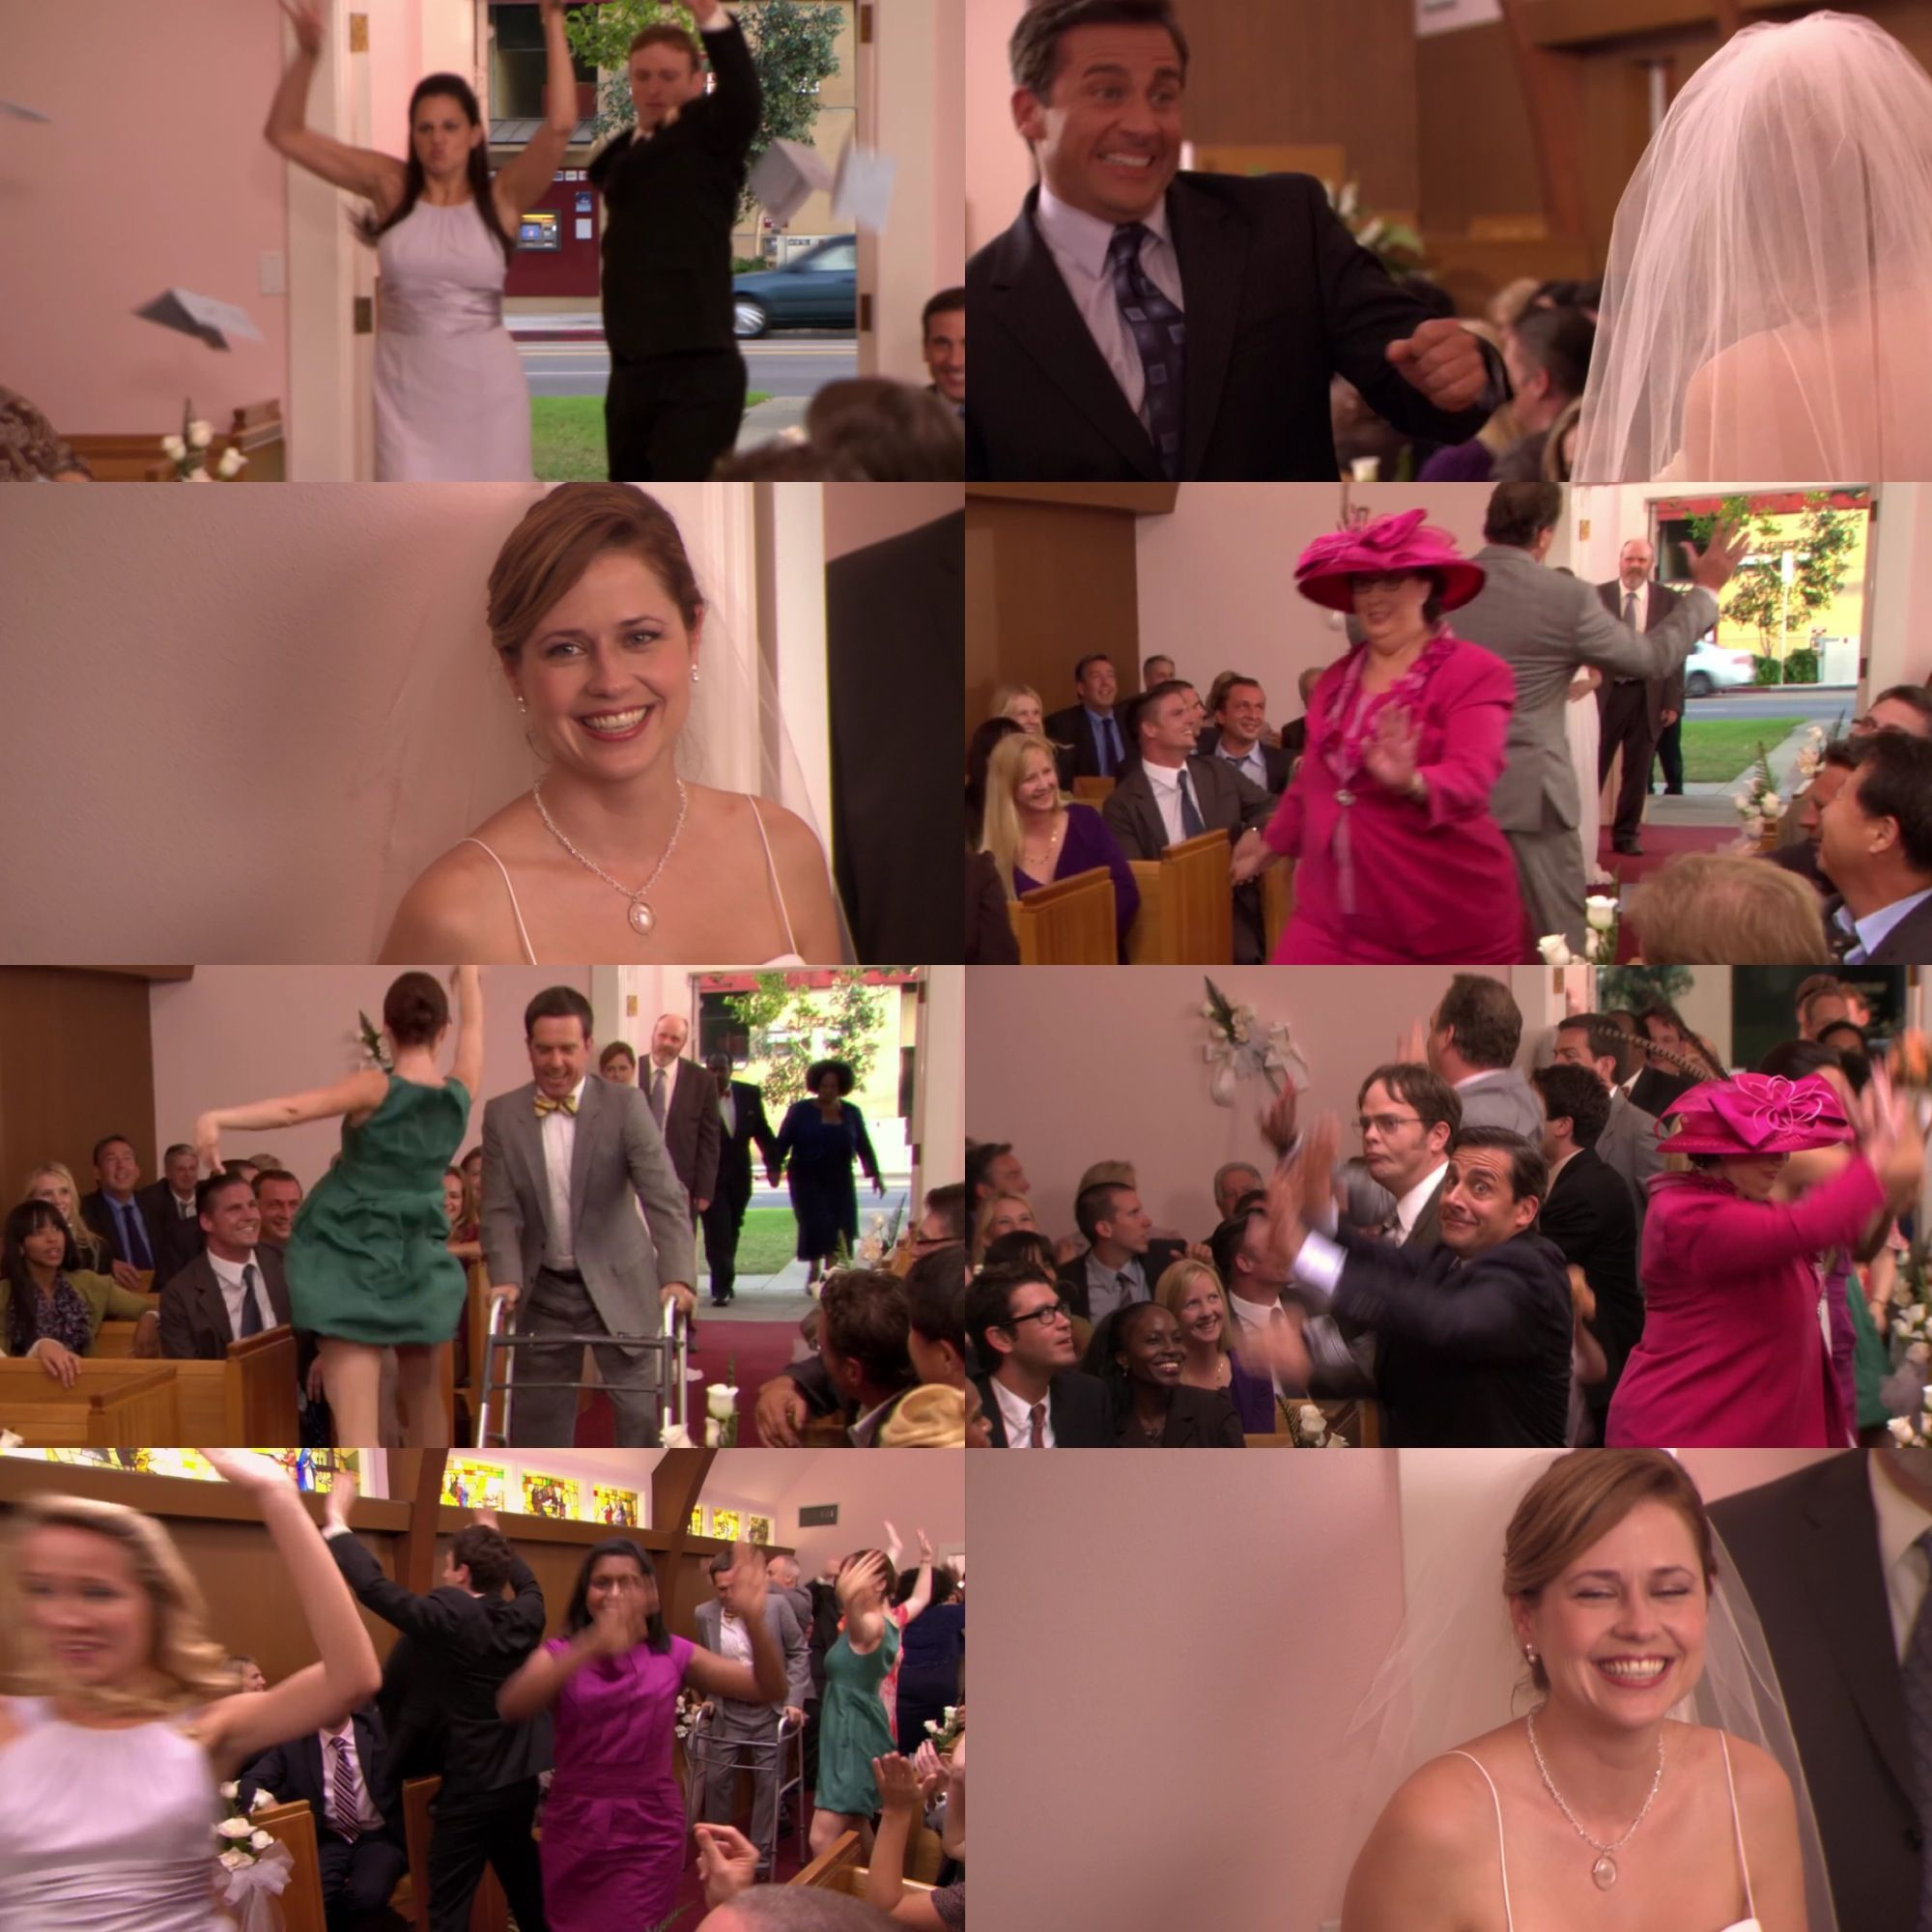 Pin By Jill Musselman On Never Going To Happen The Office Wedding Jim And Pam Wedding Best Wedding Dance